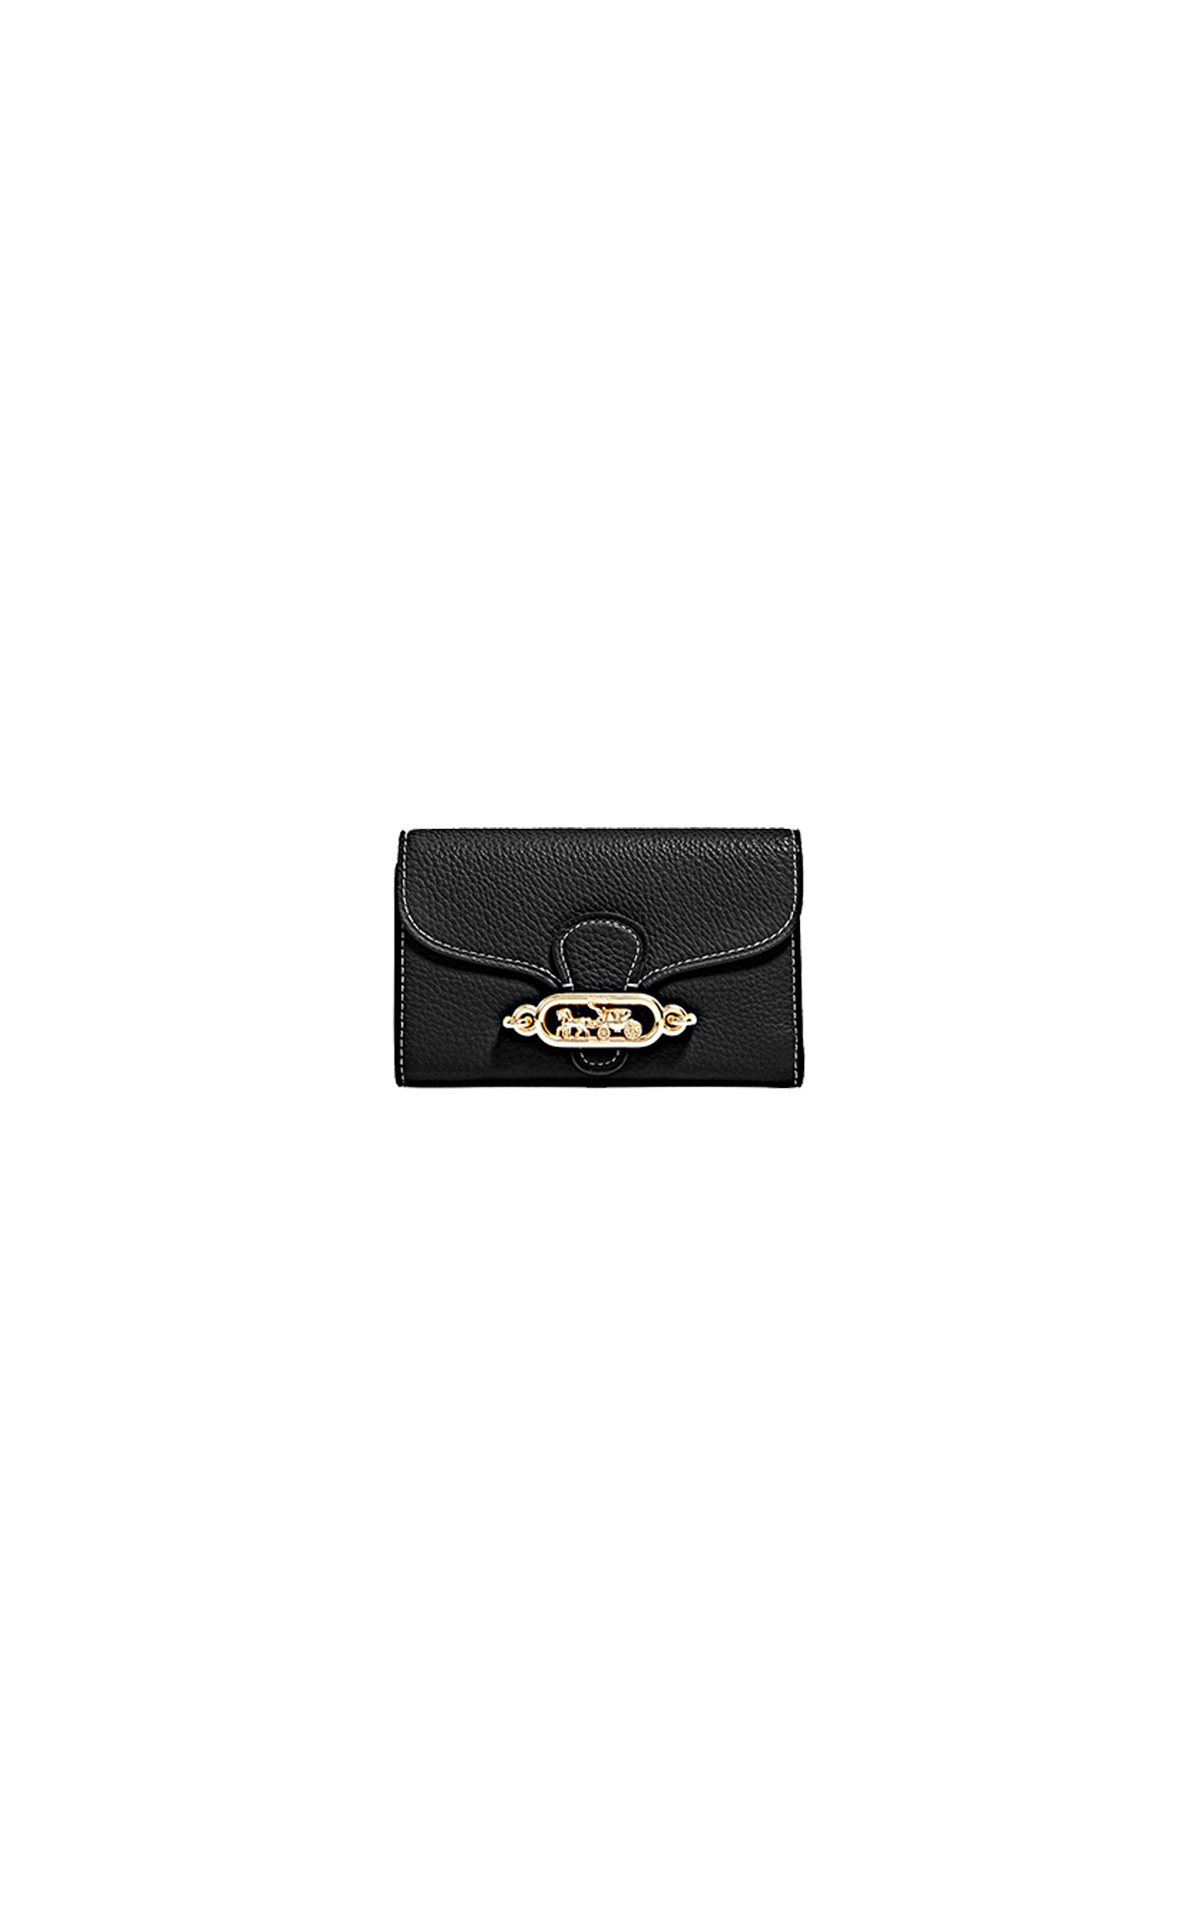 Jade medium black envelope wallet Jennifer Lopez Coach